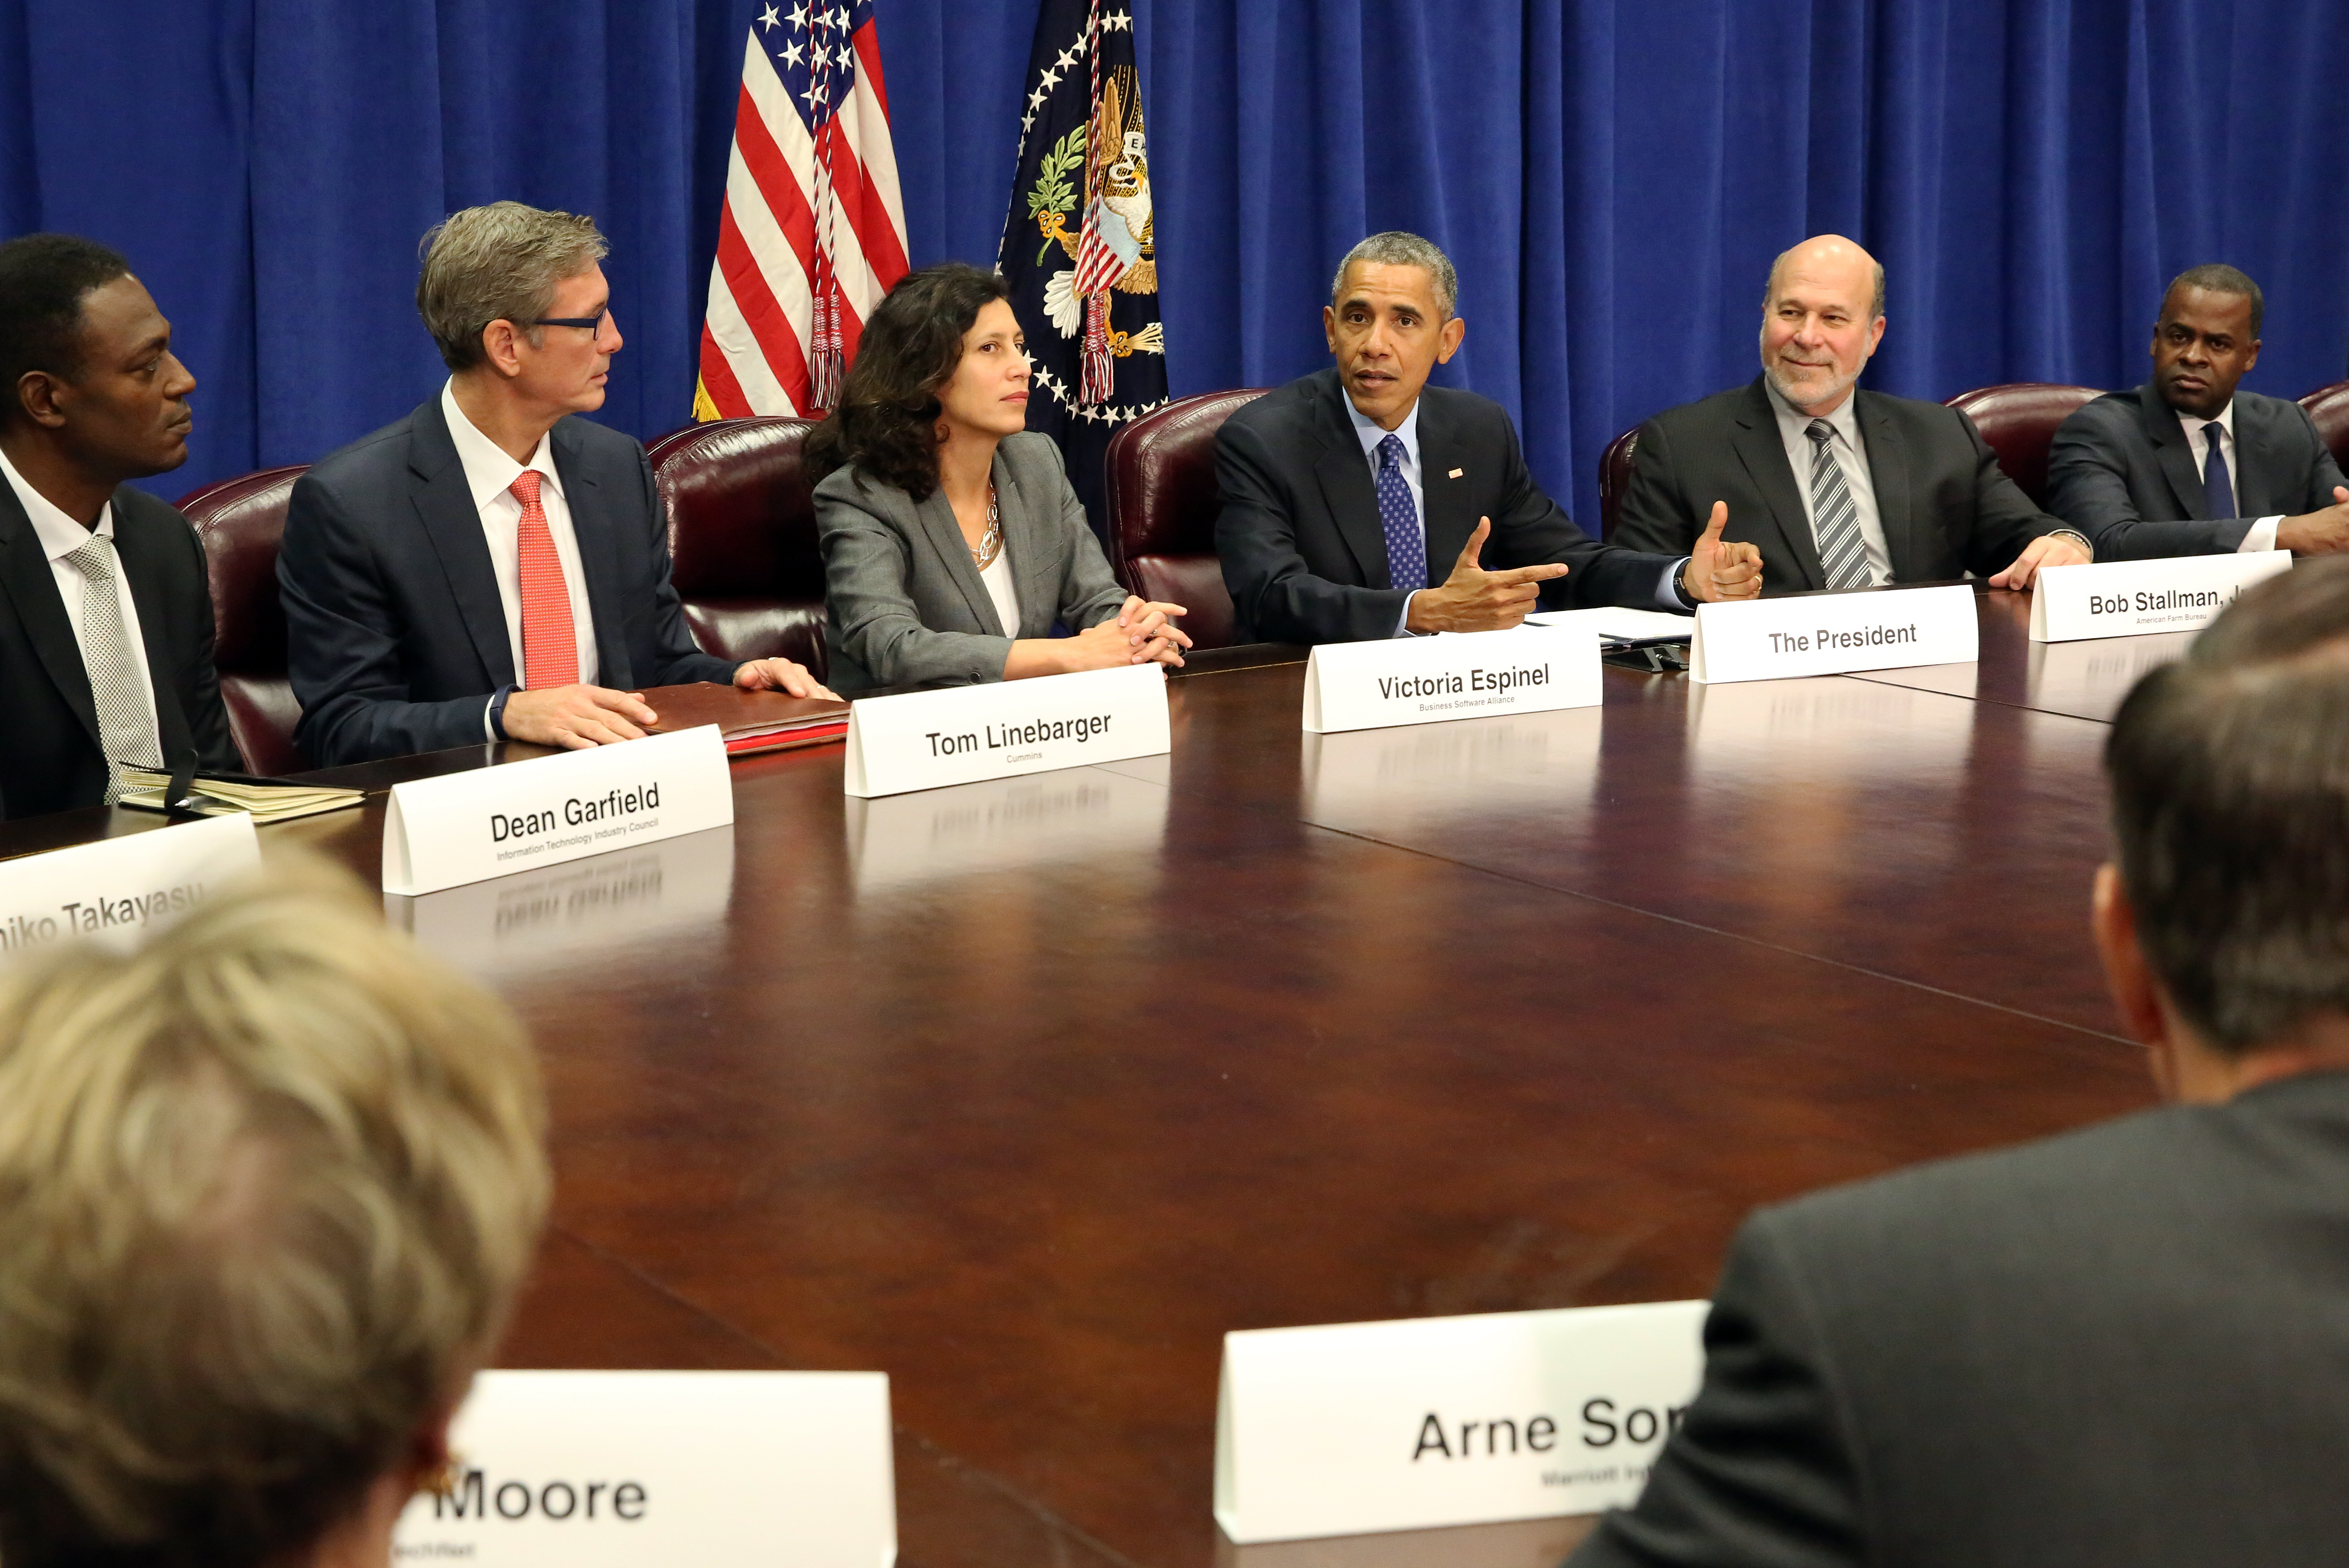 President Barack Obama meets with agriculture and business leaders on the benefits of the Trans-Pacific Partnership for American business and workers, at the Department of Agriculture in Washington, Tuesday, Oct. 6, 2015. Flanking the president are Victoria Espinel, CEO, The Software Alliance (left); and Bob Stallman, Jr., President, American Farm Bureau.